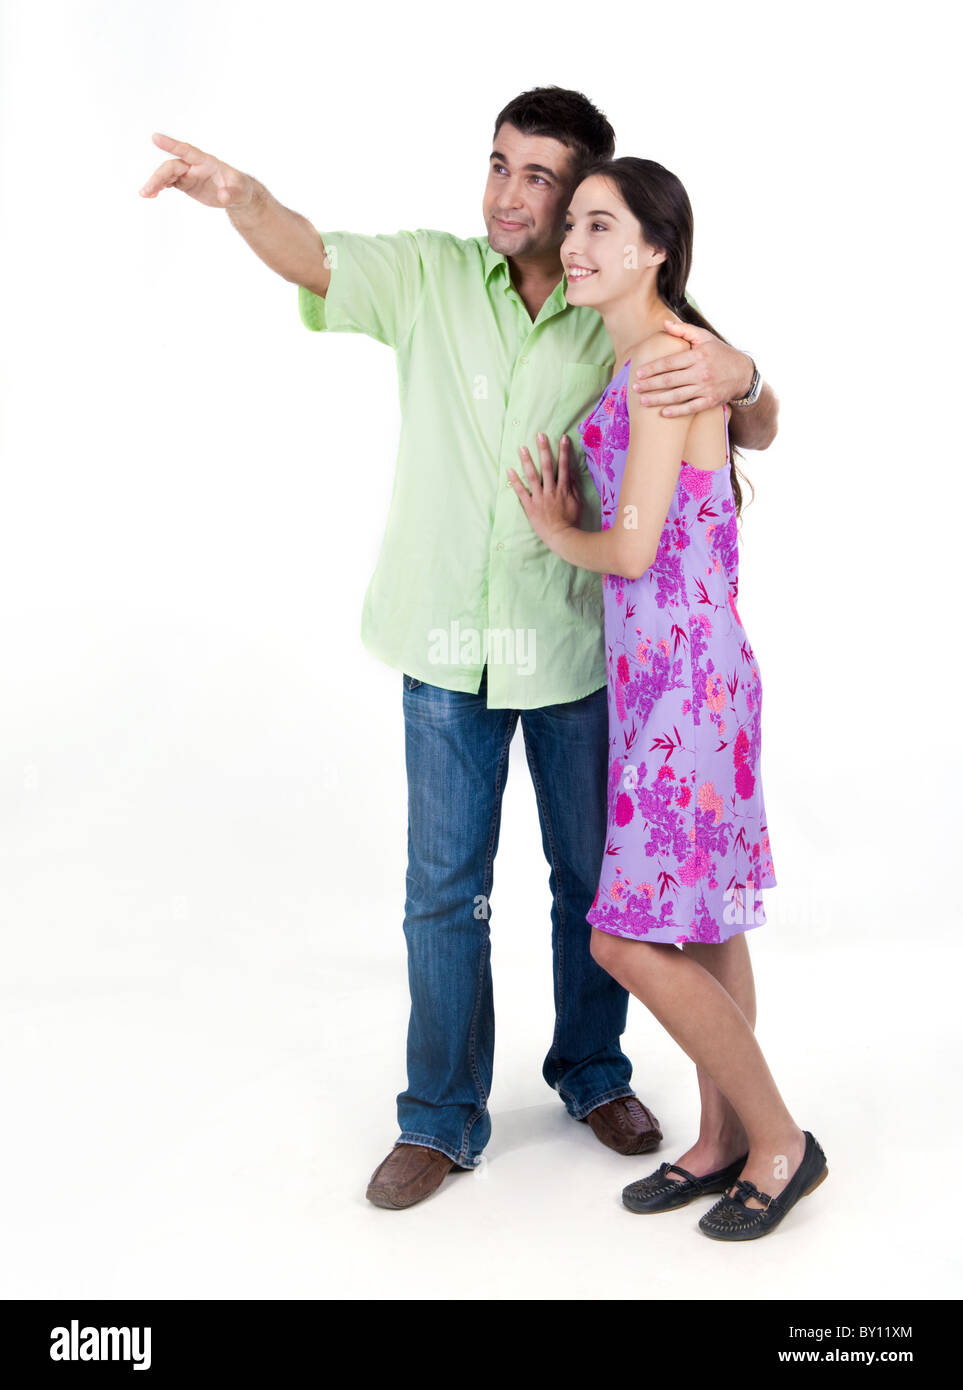 Portrait of young couple looking at something pointed at by man - Stock Image